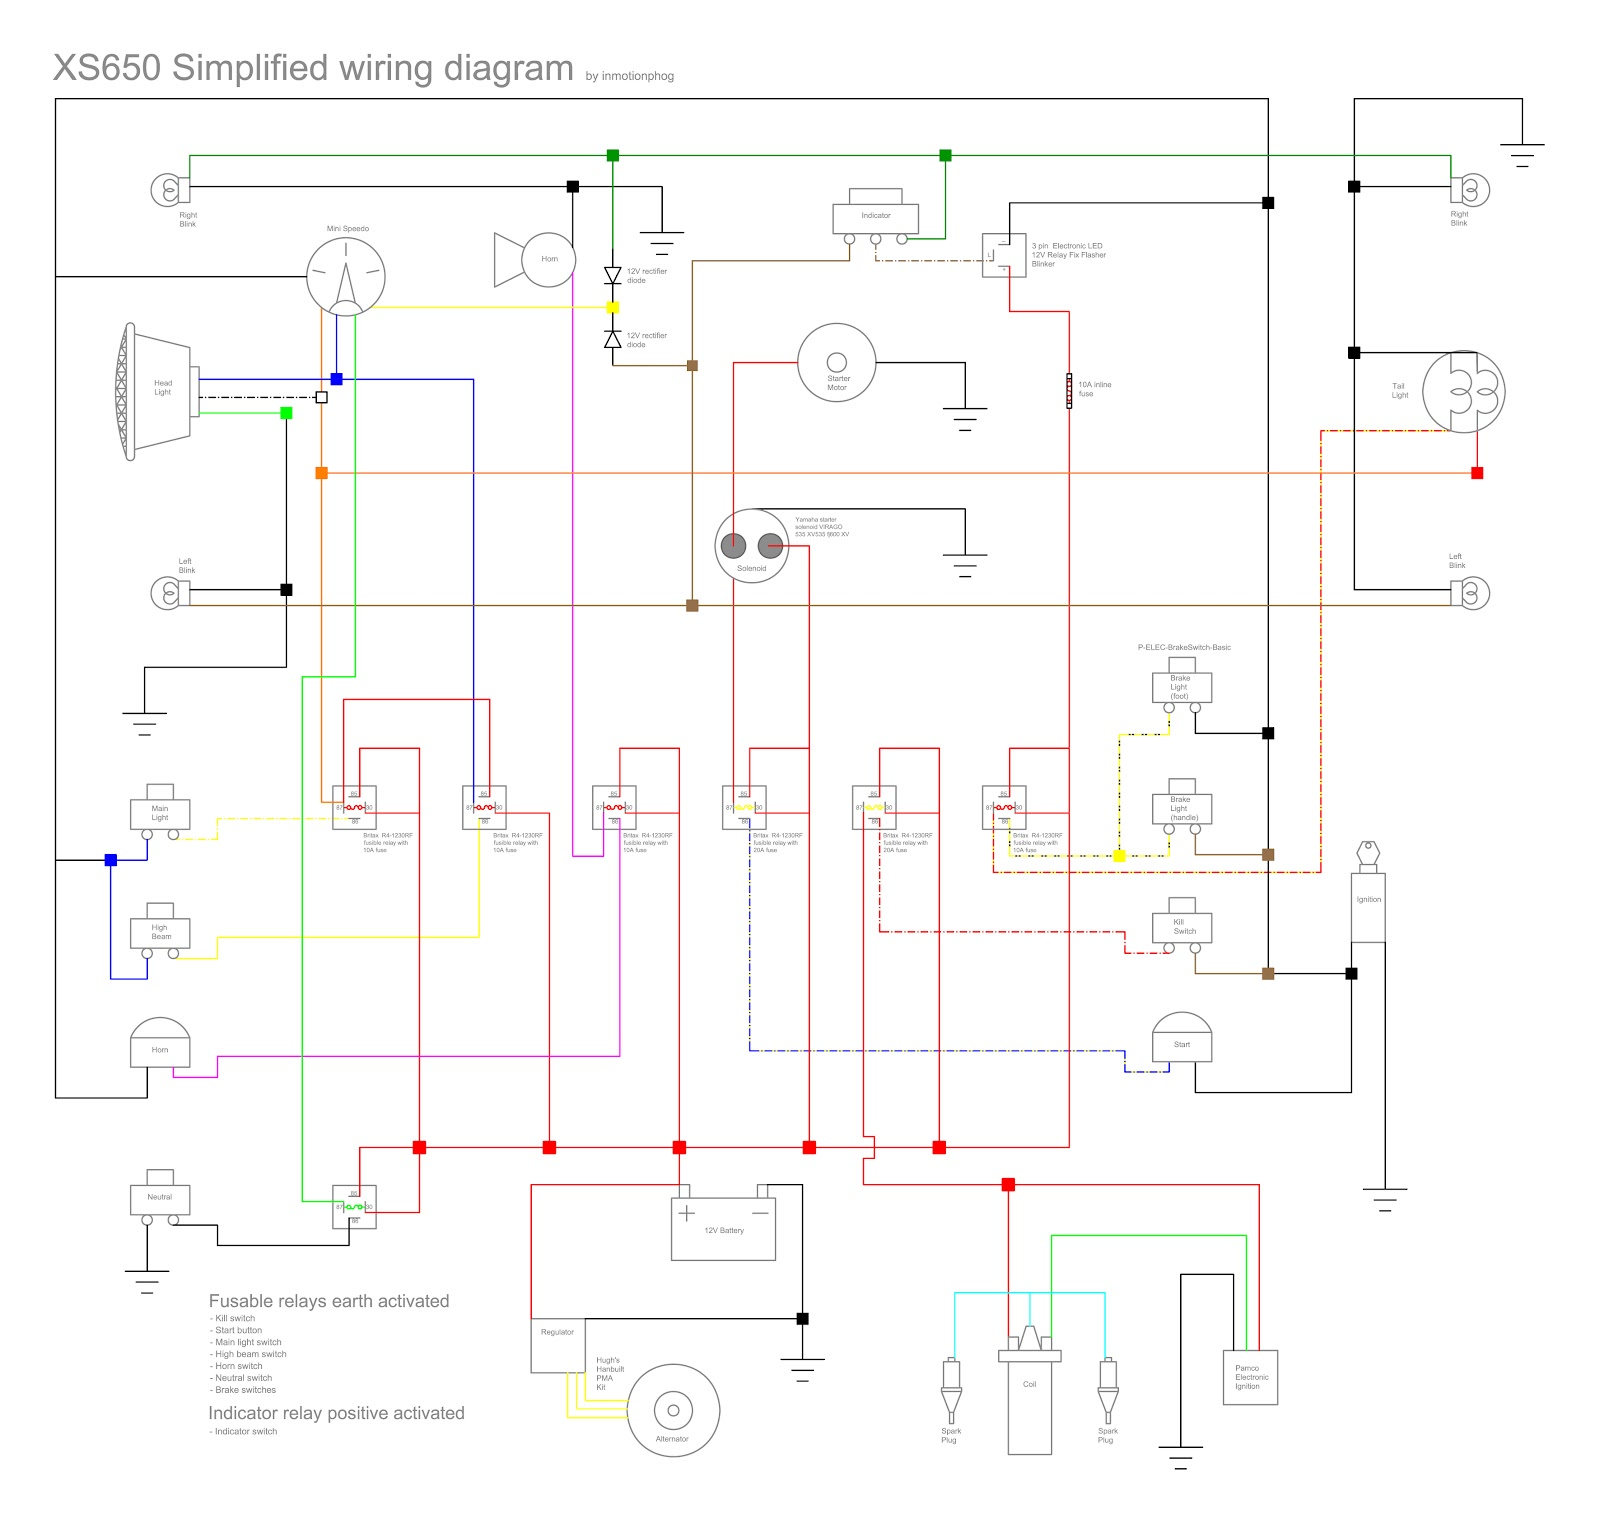 WRG-2562] Xs650 Simplified Wiring Harness on